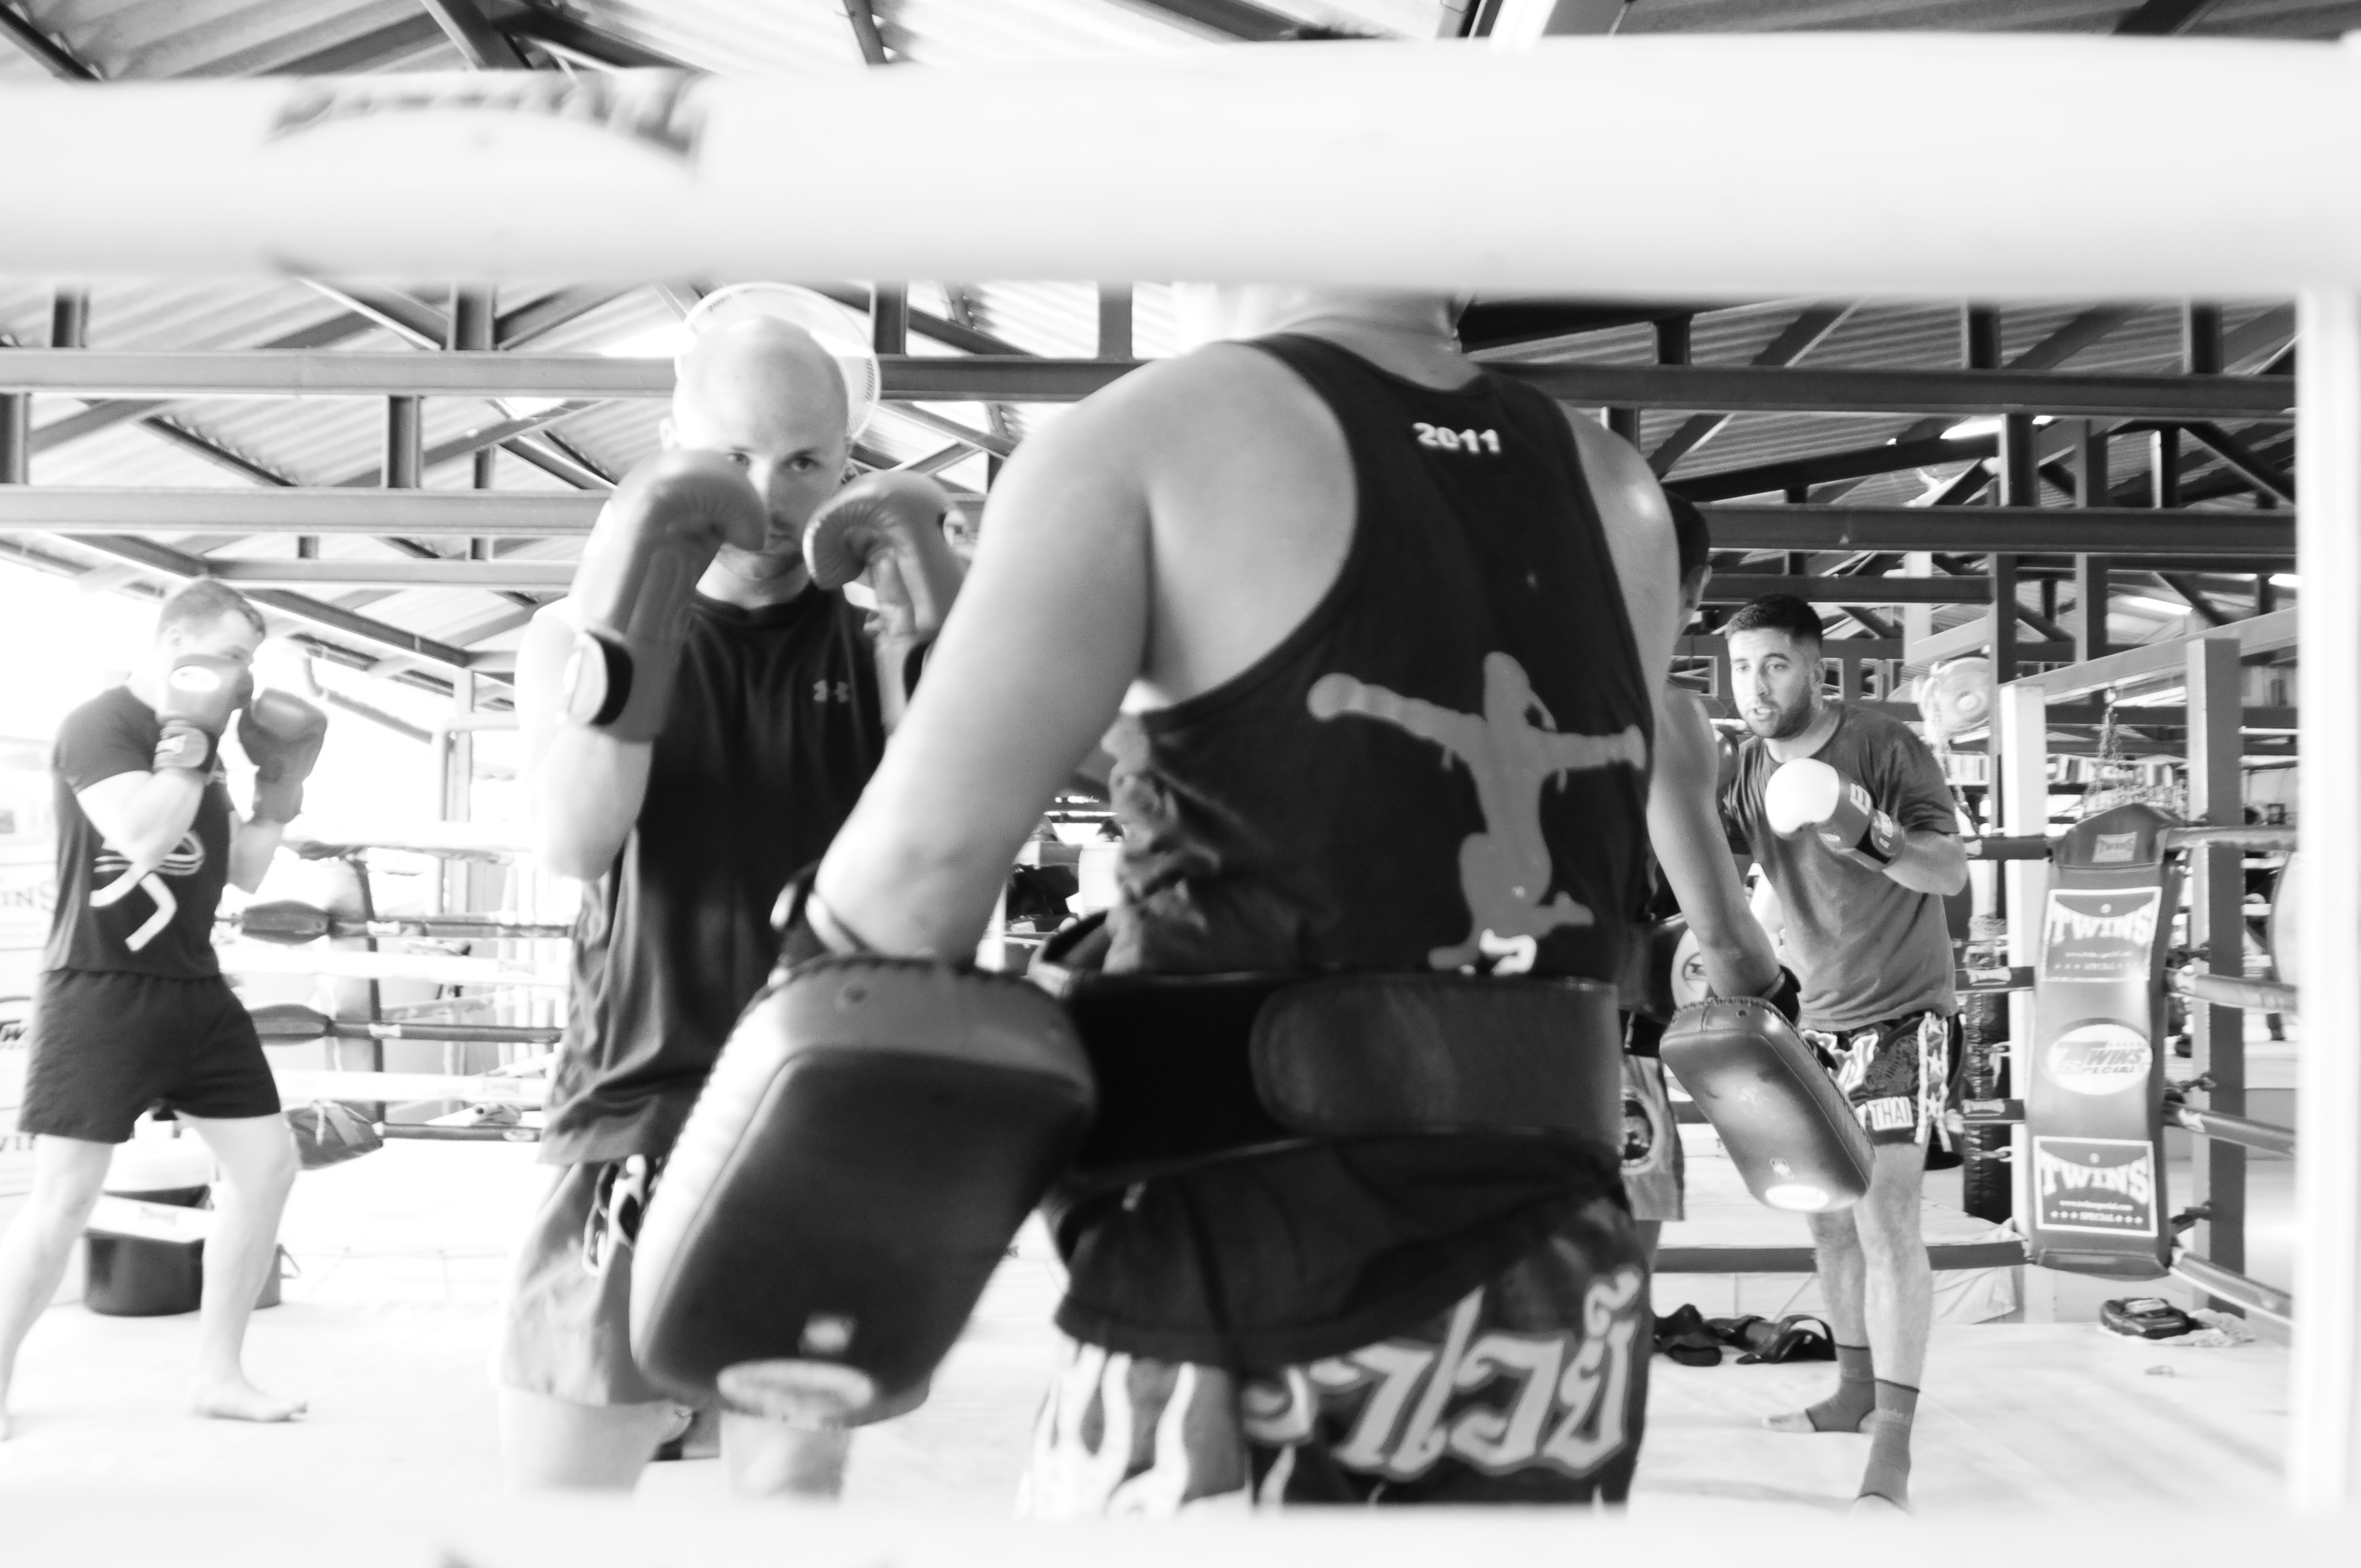 Does Muay Thai Help You Lose Weight?